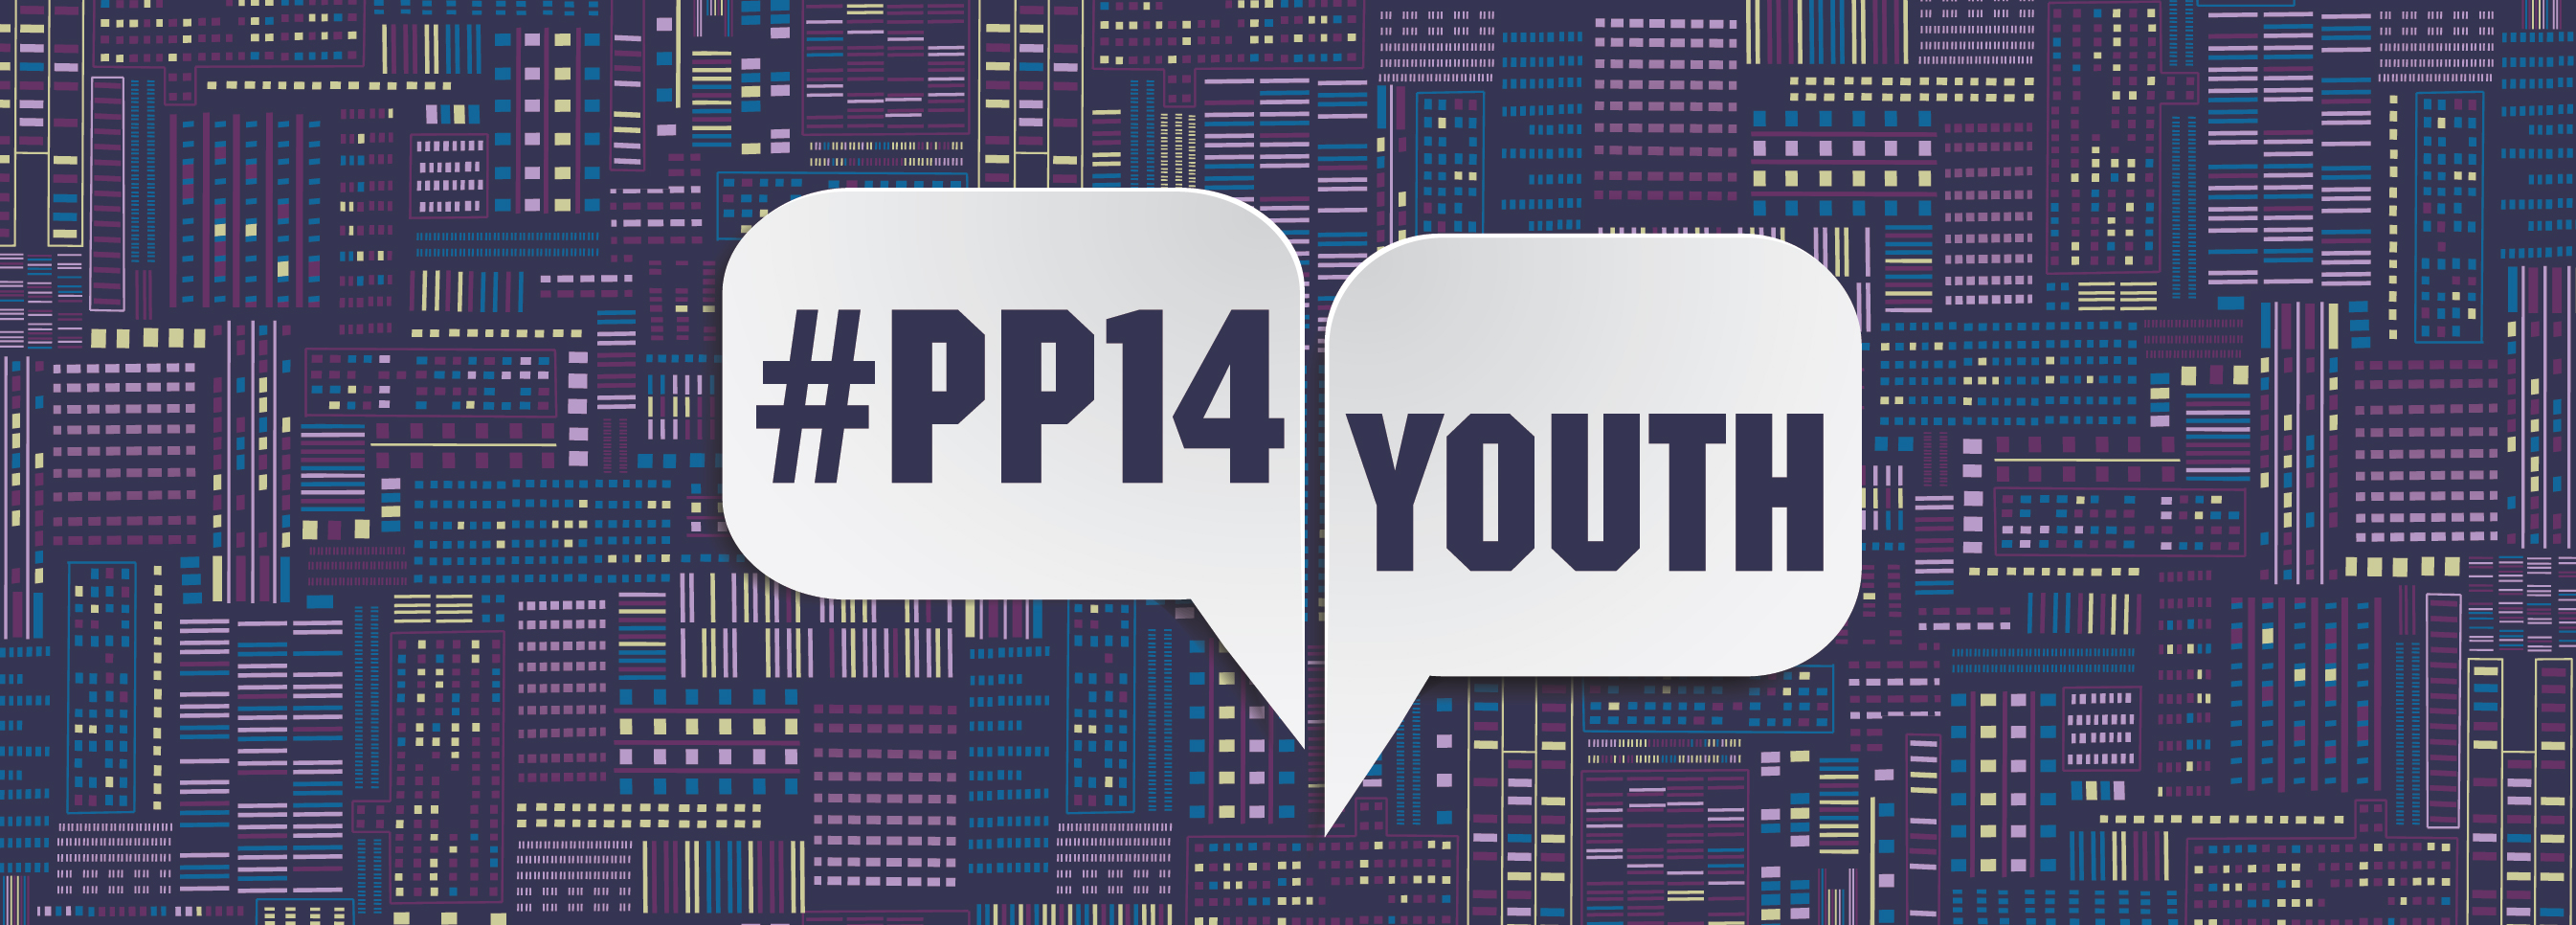 pp14 youth logo